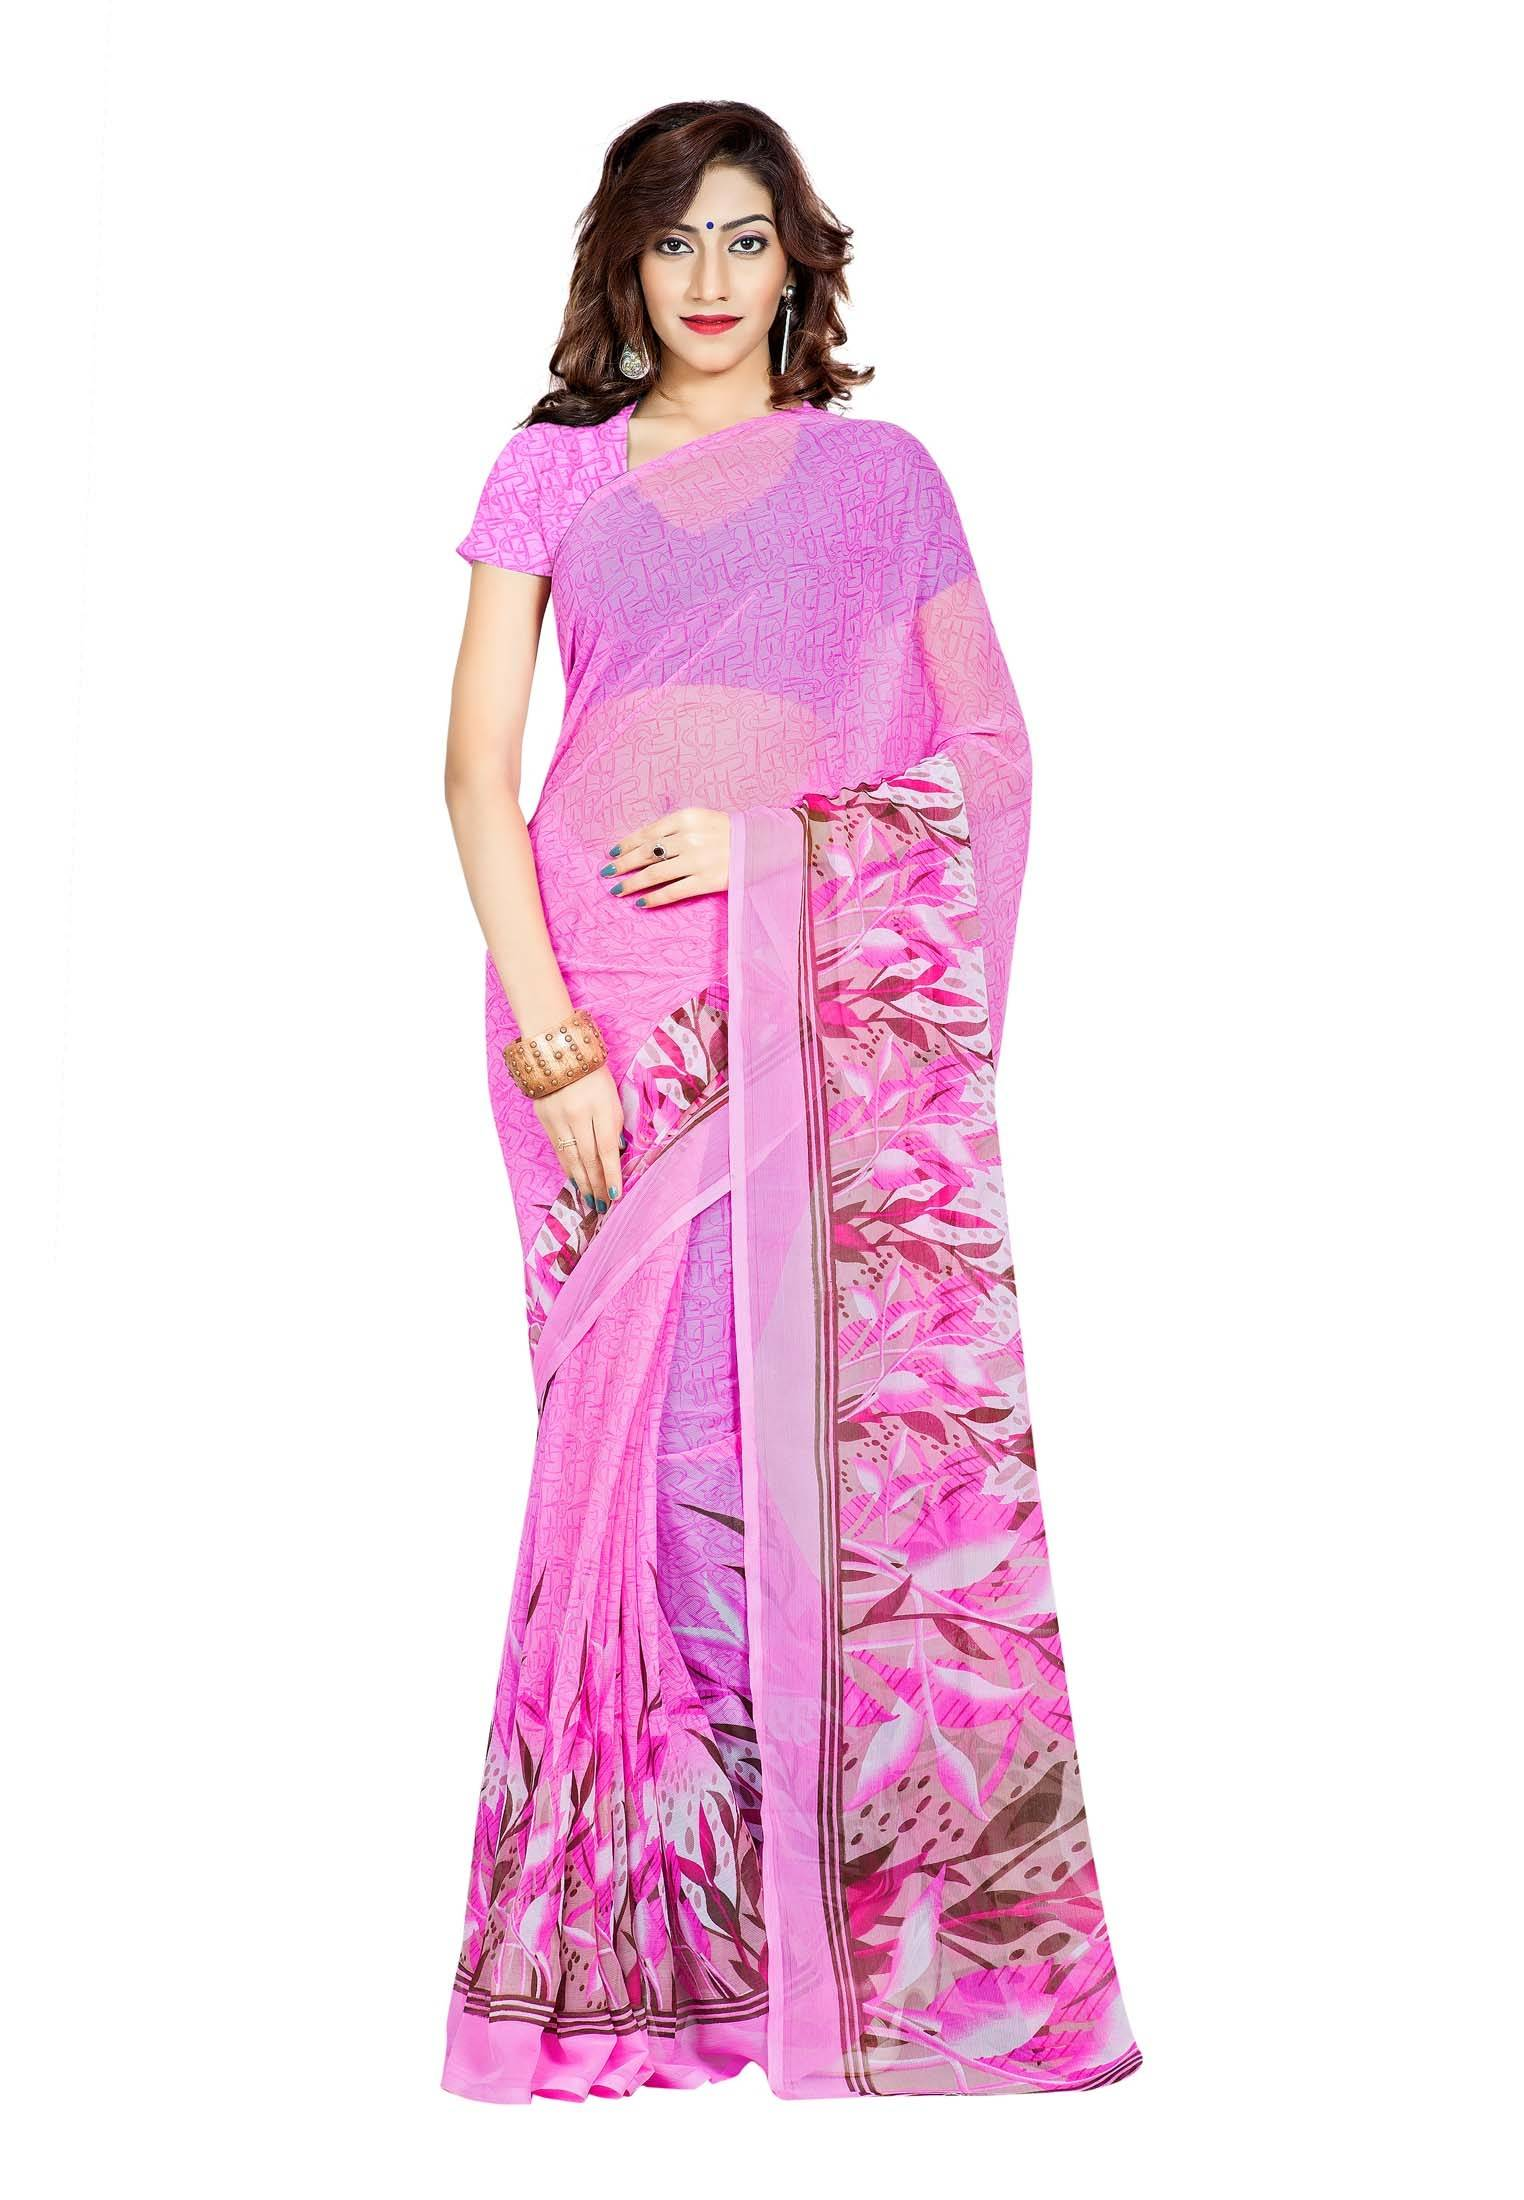 Ambaji Casual Wear Magenta Colored Printed Chiffon Saree/Sari